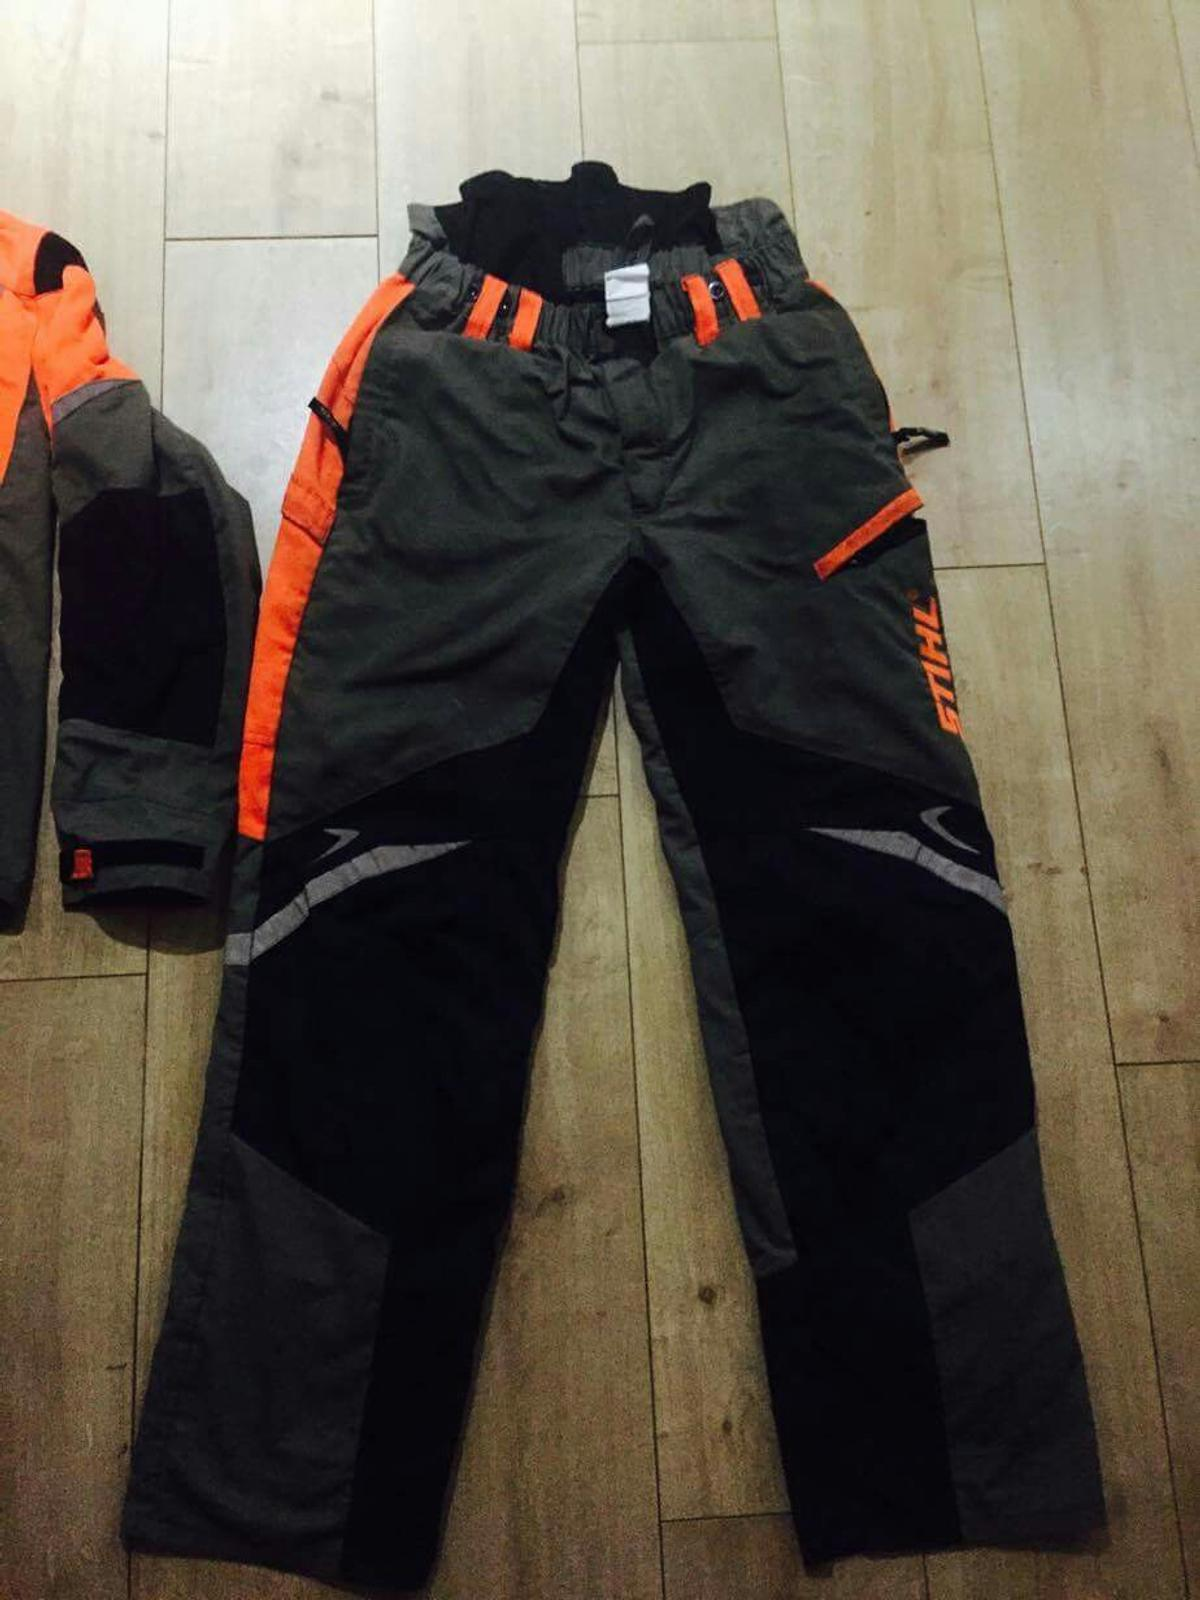 faefabc8156 Stihl ERGO chainsaw trousers   jacket in SE2 London for £100.00 for ...